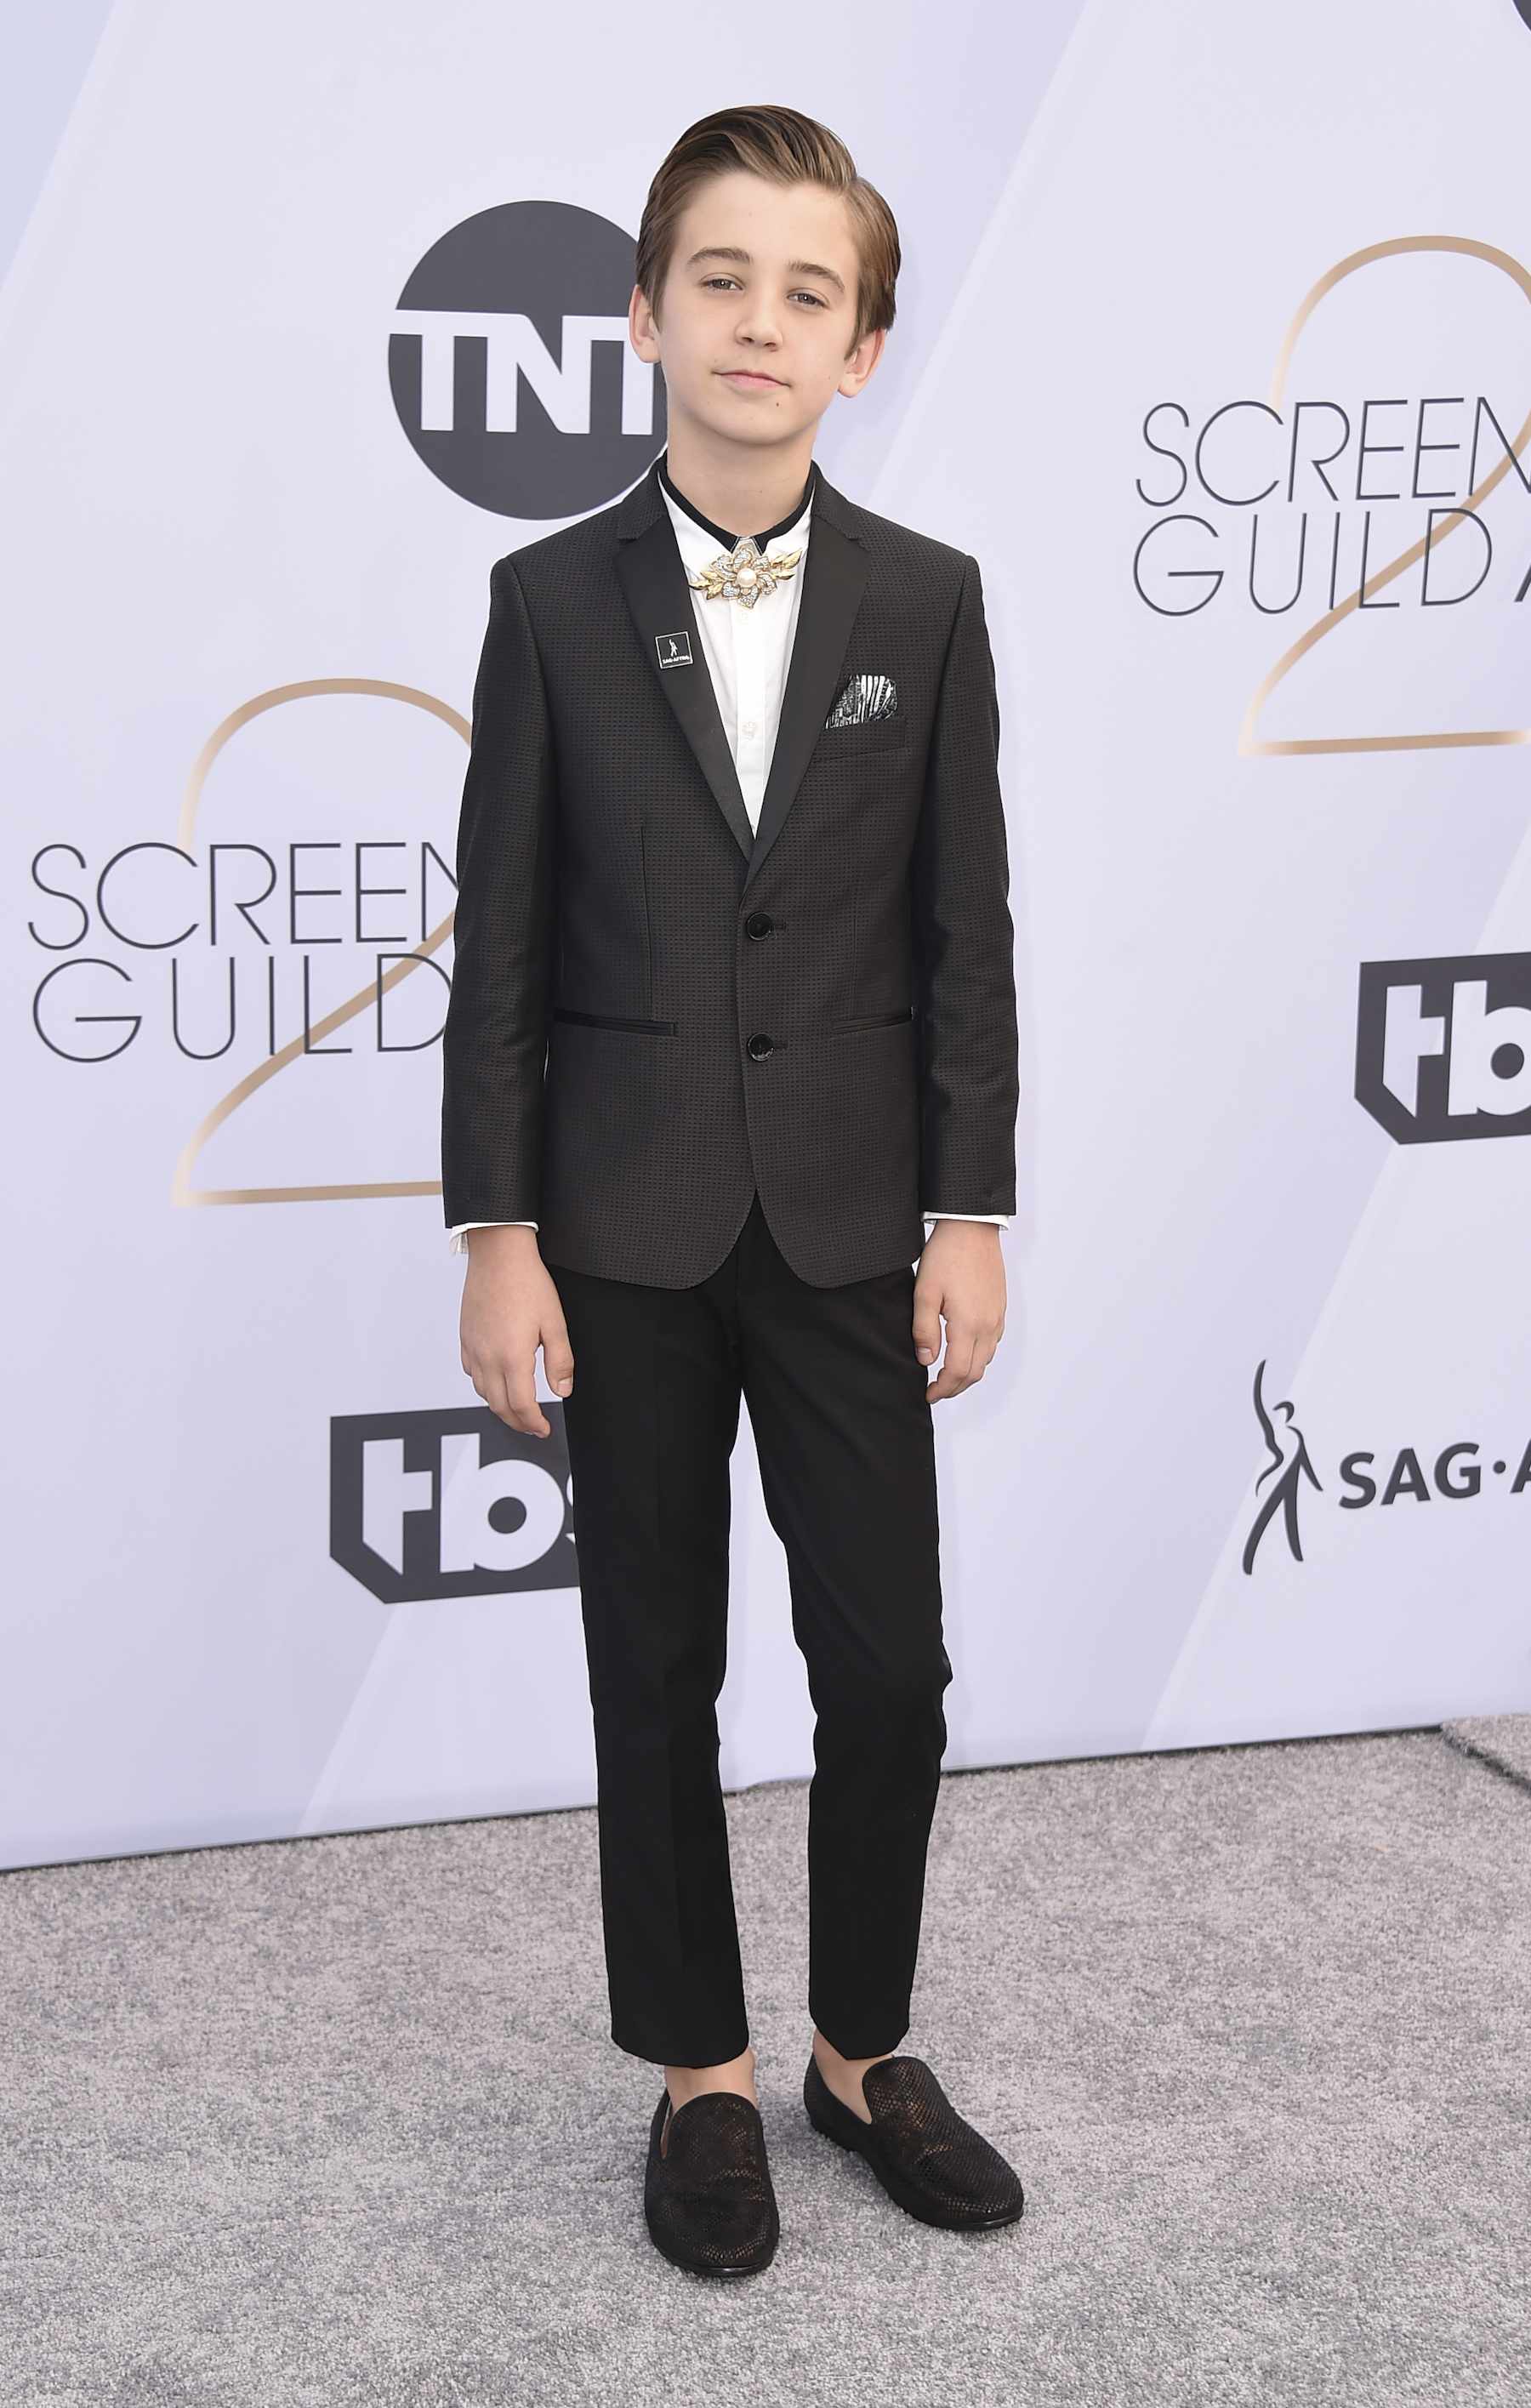 <div class='meta'><div class='origin-logo' data-origin='AP'></div><span class='caption-text' data-credit='Jordan Strauss/Invision/AP'>Parker Bates arrives at the 25th annual Screen Actors Guild Awards at the Shrine Auditorium & Expo Hall on Sunday, Jan. 27, 2019, in Los Angeles.</span></div>